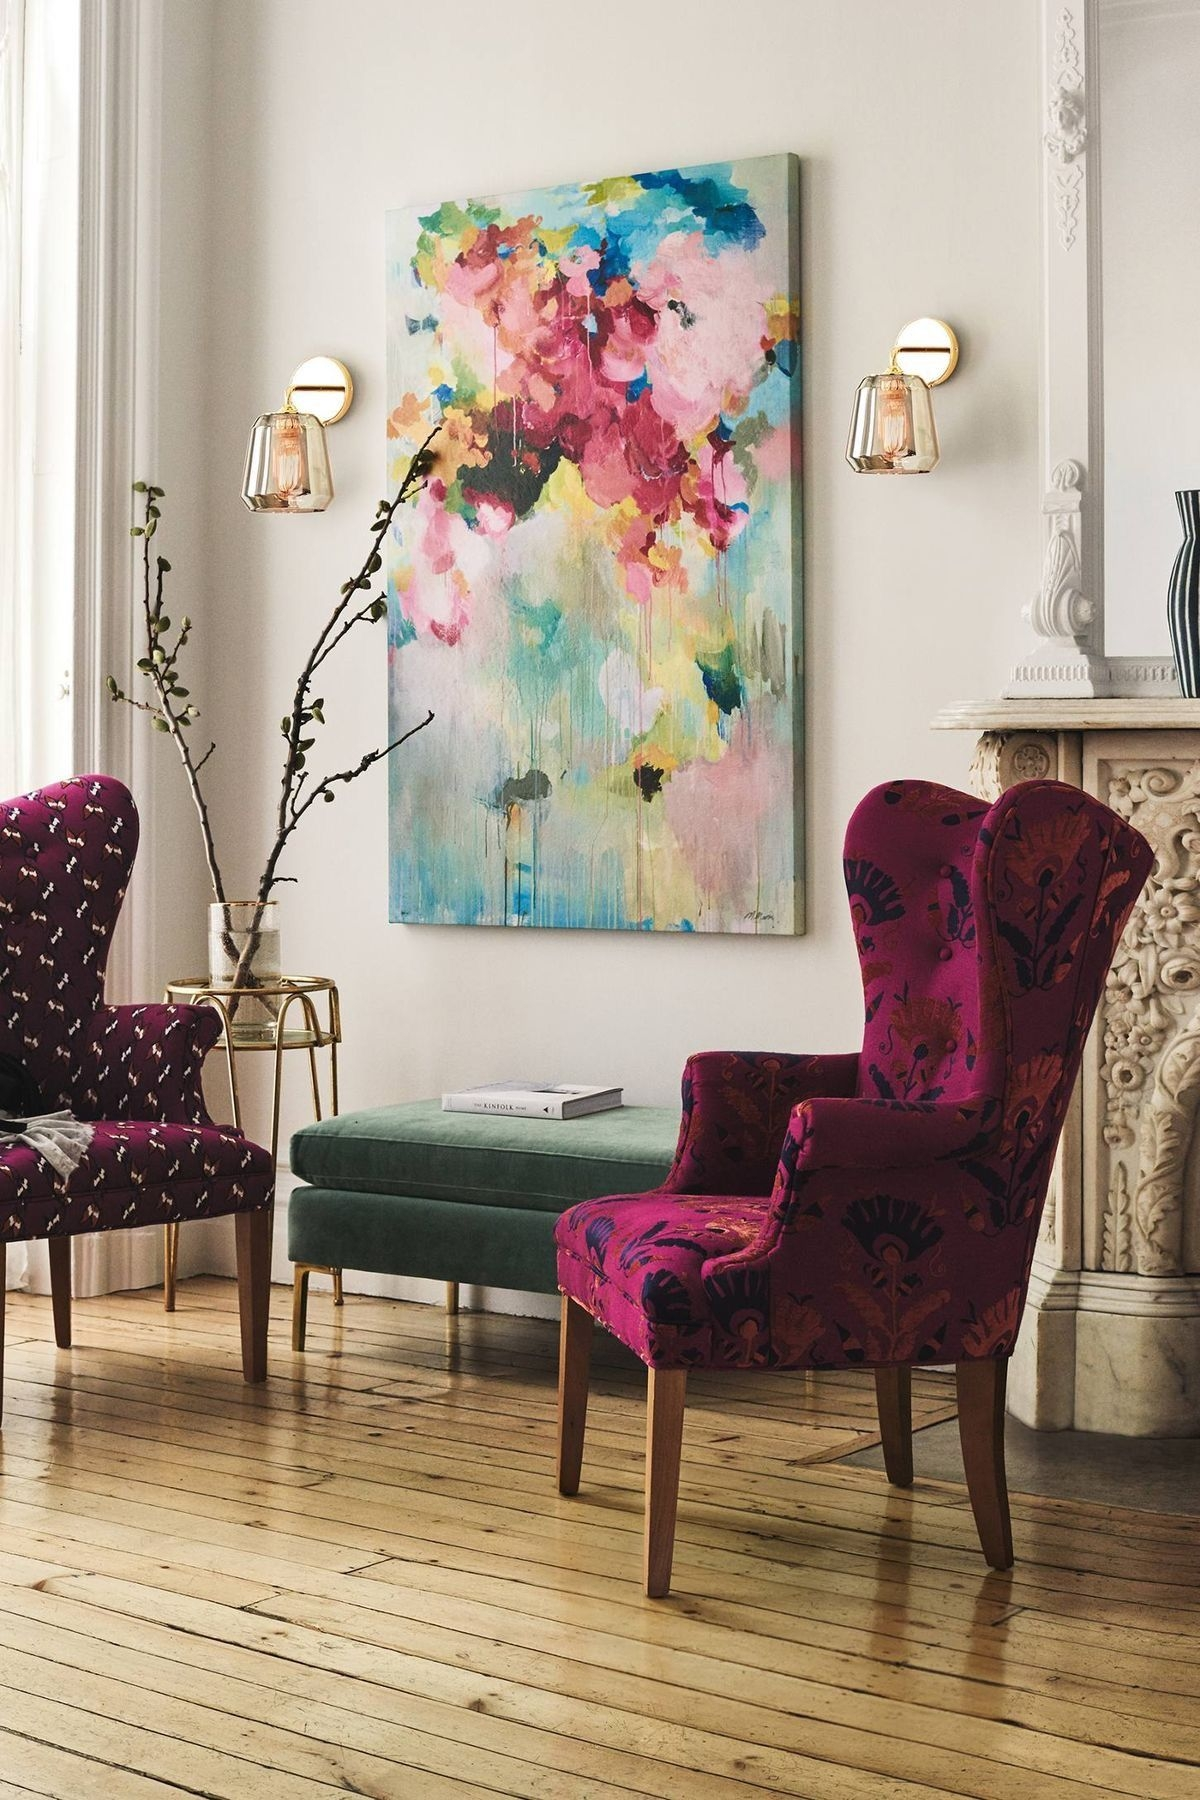 Prodigious Home Decor Ideas Living Room Modern Boho area Rug with Plum Accents On Exquisite Pin by Romina Lukačić On Colorful Home On Home Decor Ideas Living Room Modern Boho area Rug with Plum Accents